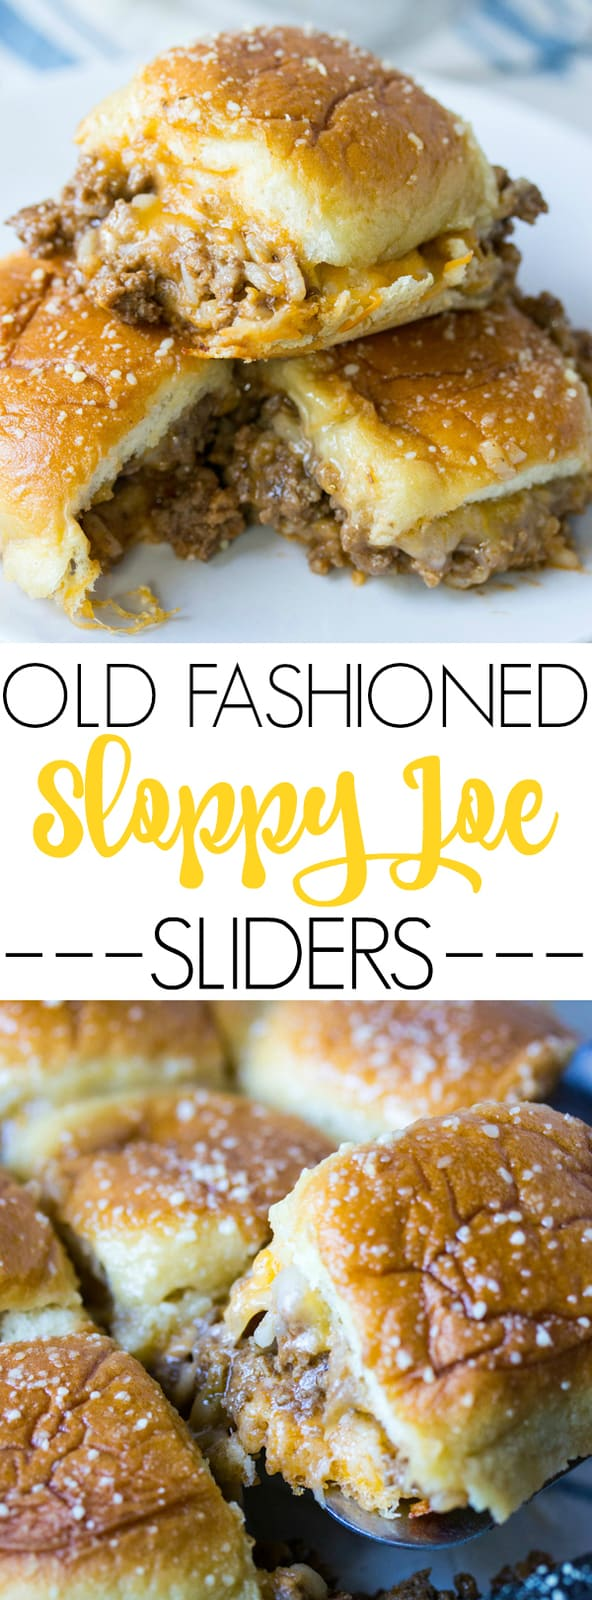 Old Fashioned Sloppy Joe Sliders